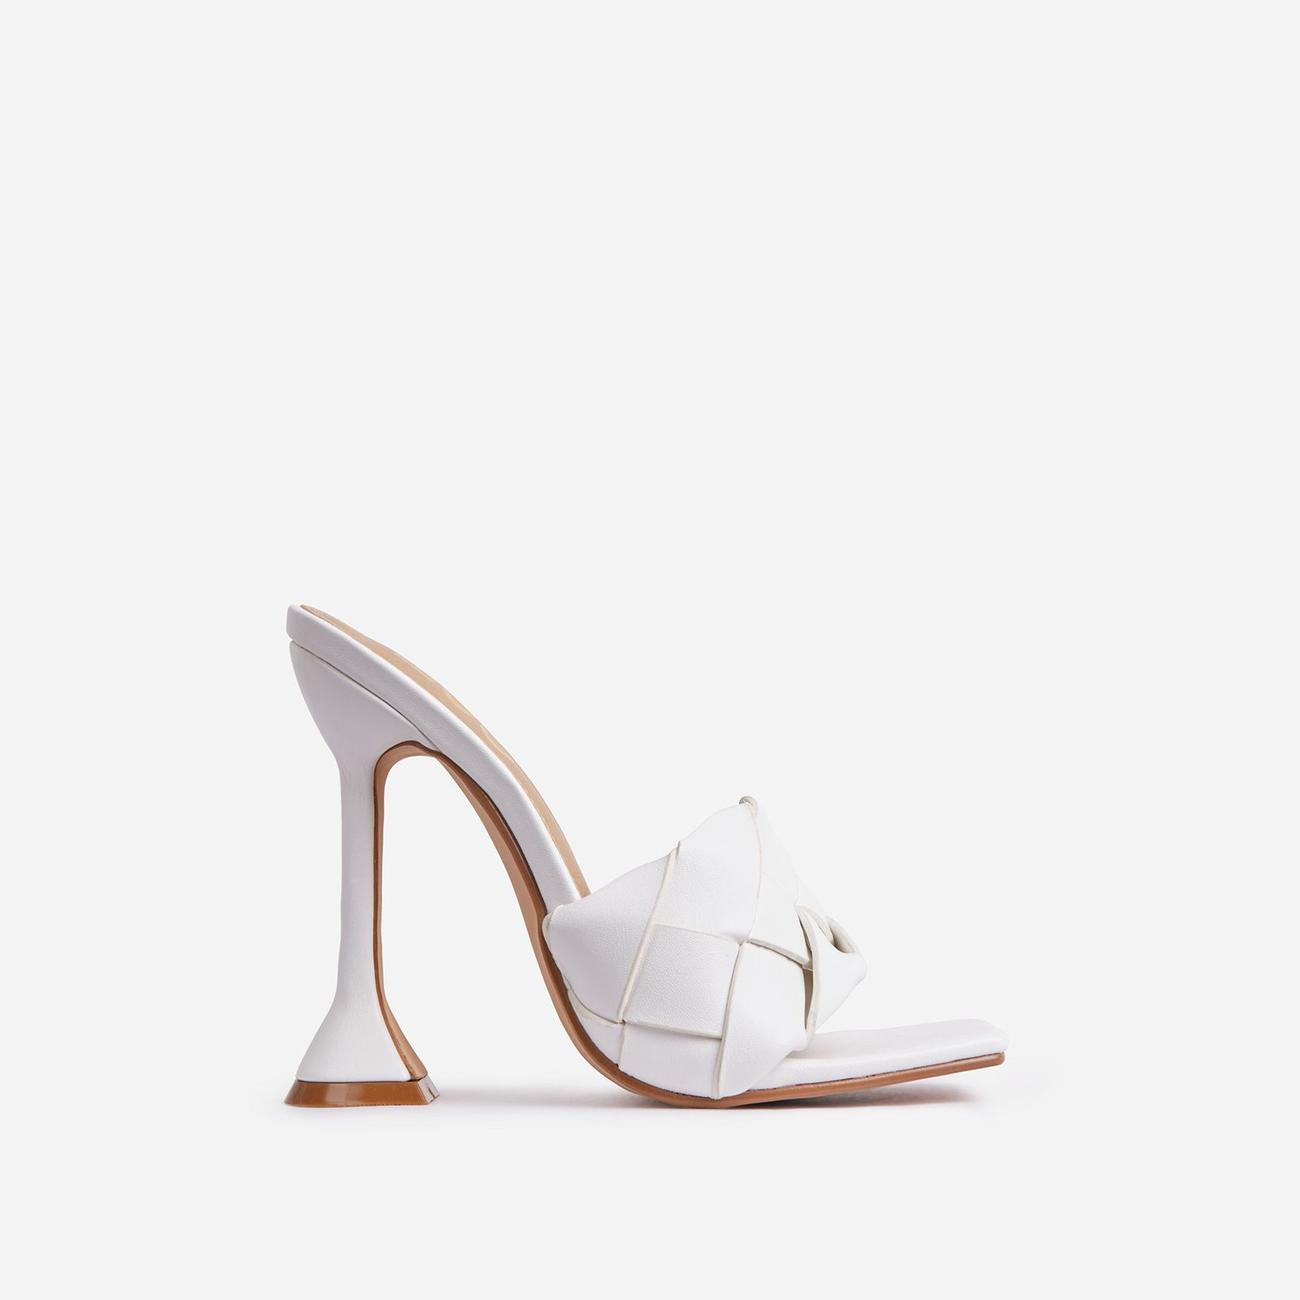 Handled Woven Square Peep Toe Pyramid Heel Mule In White Faux Leather Image 1